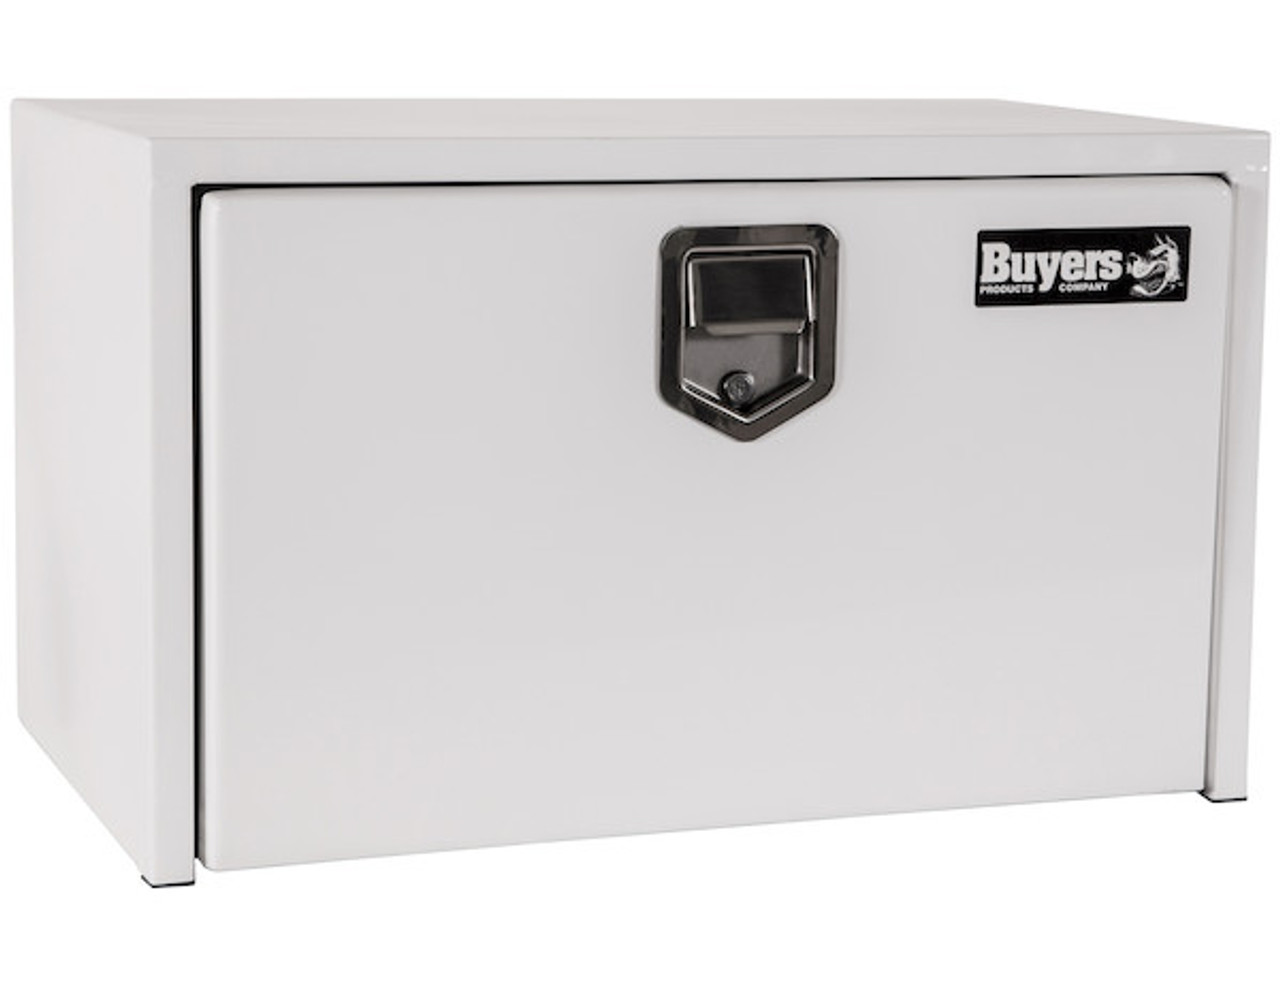 1703203 BUYERS PRODUCTS WHITE STEEL UNDERBODY TRUCK BOX WITH PADDLE LATCH TOOLBOX